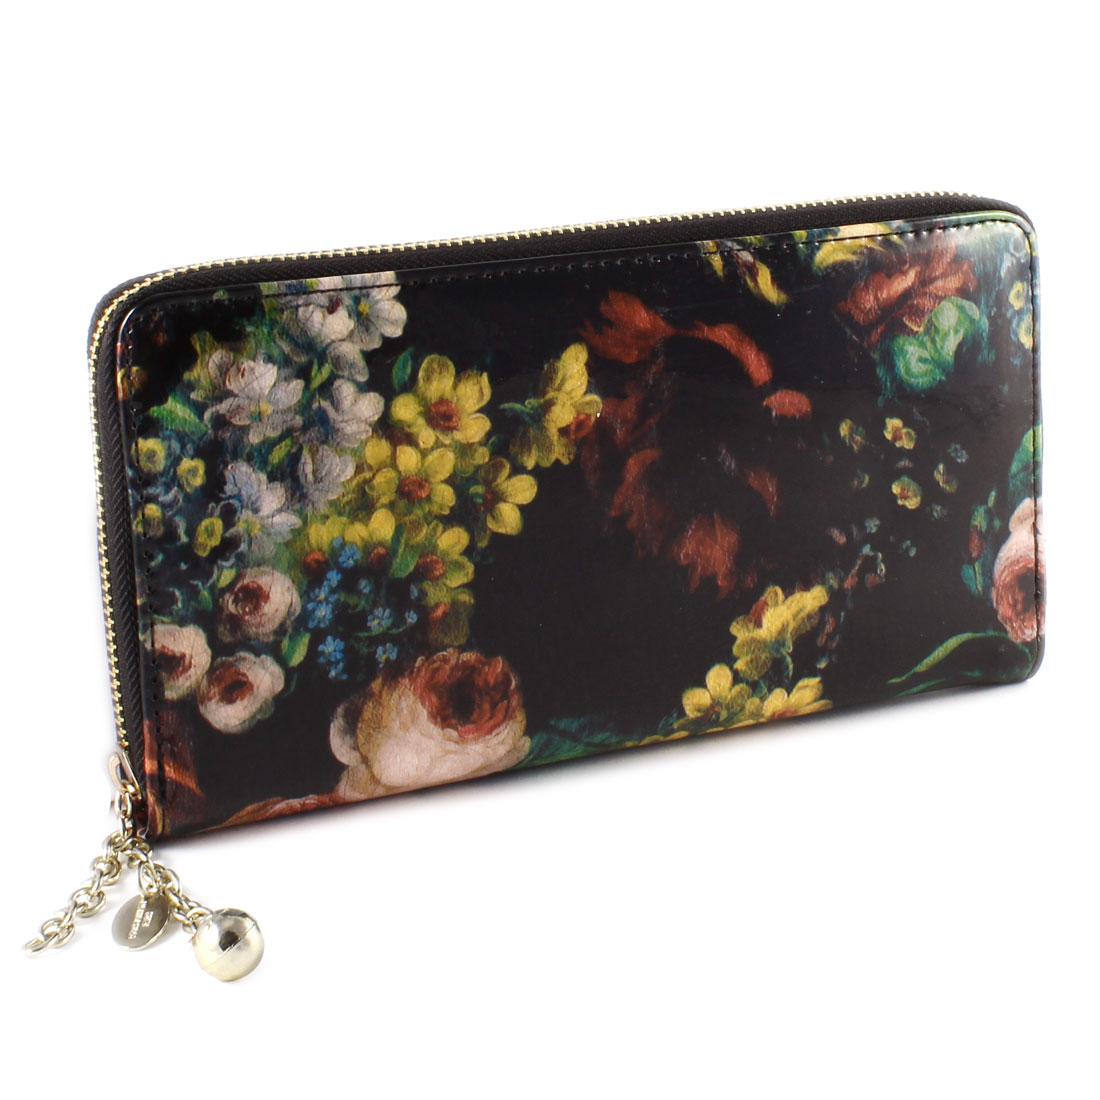 Colorful Floral Prints Faux Leather Zippered Purse Wallet Bag Black